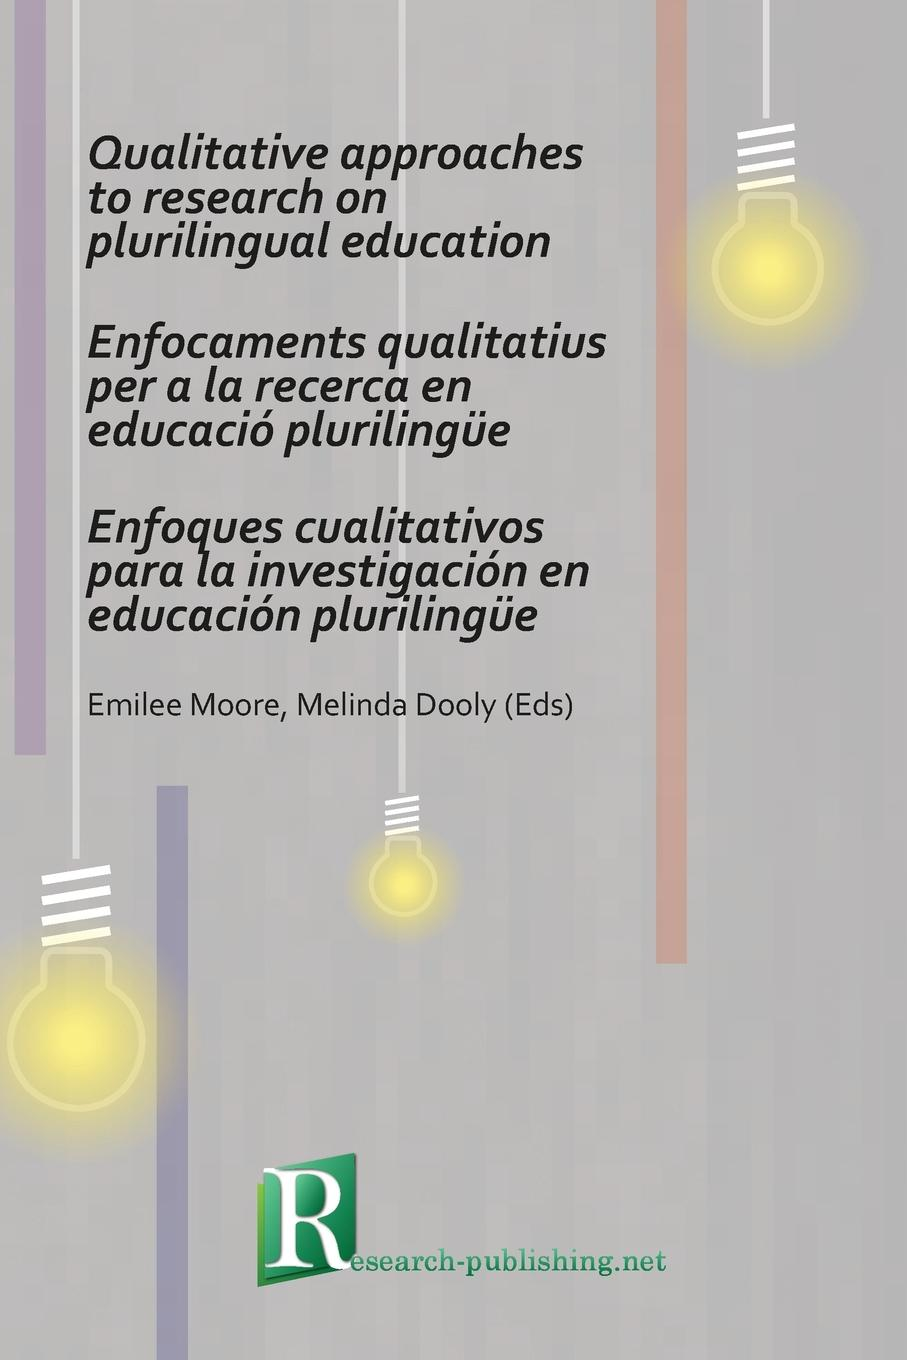 Emilee Moore, Melinda Dooly Qualitative approaches to research on plurilingual education critical qualitative research in social education